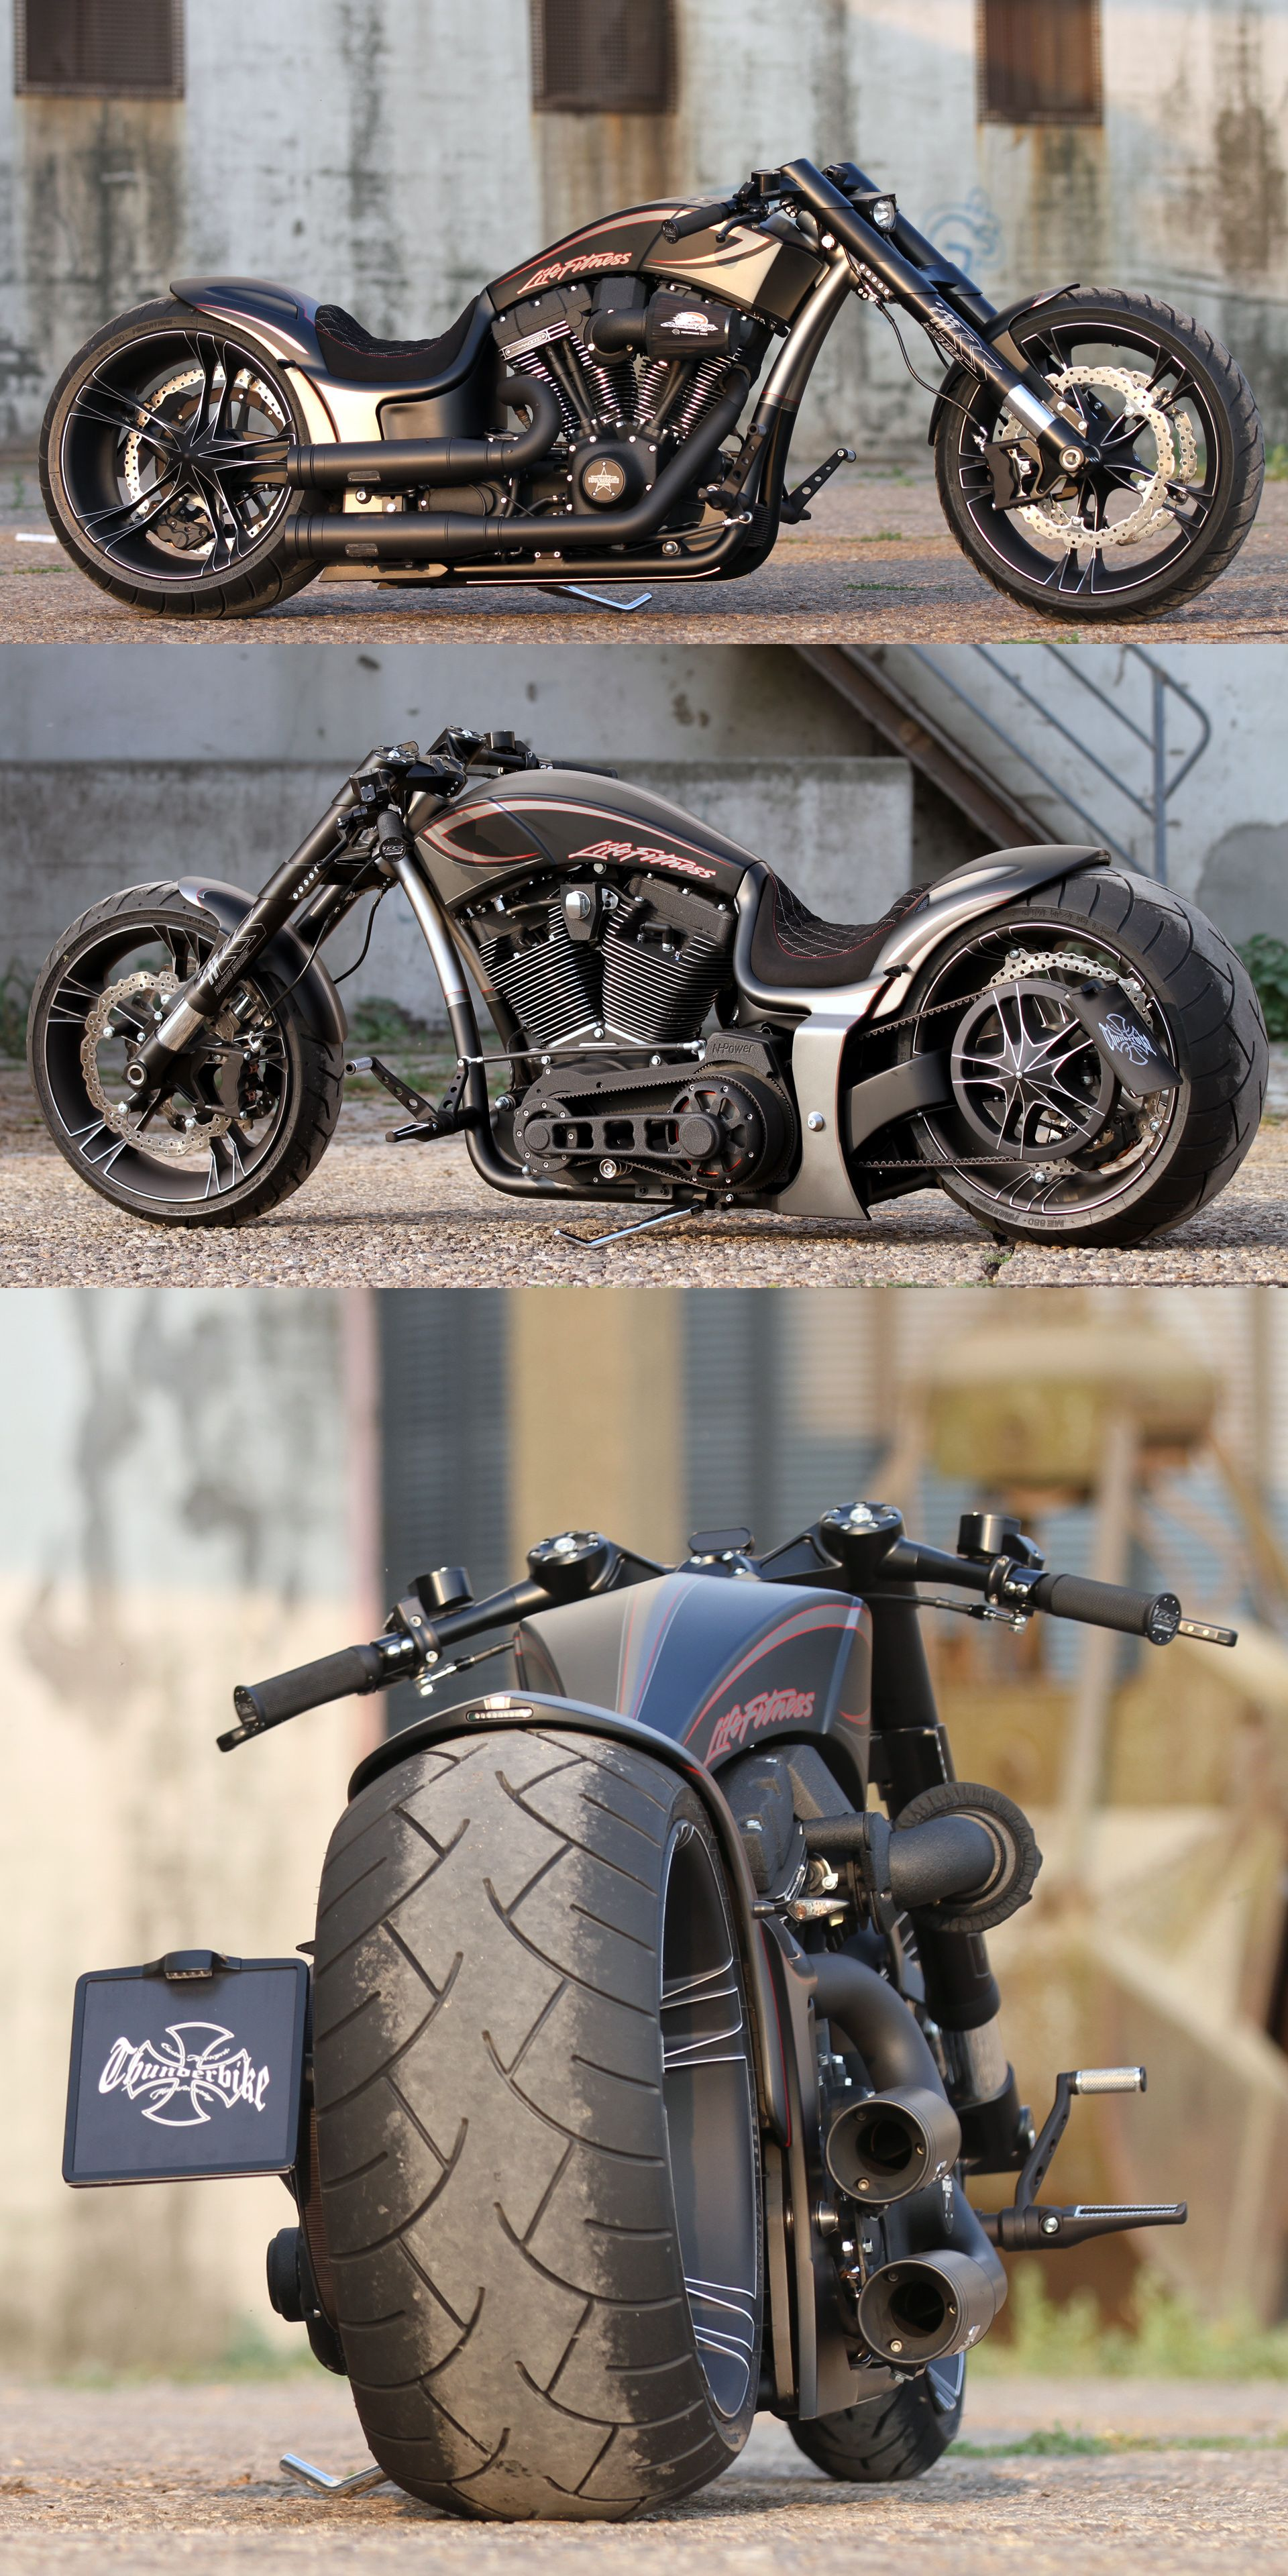 Thunderbike Dragster RSR custom motorcycle